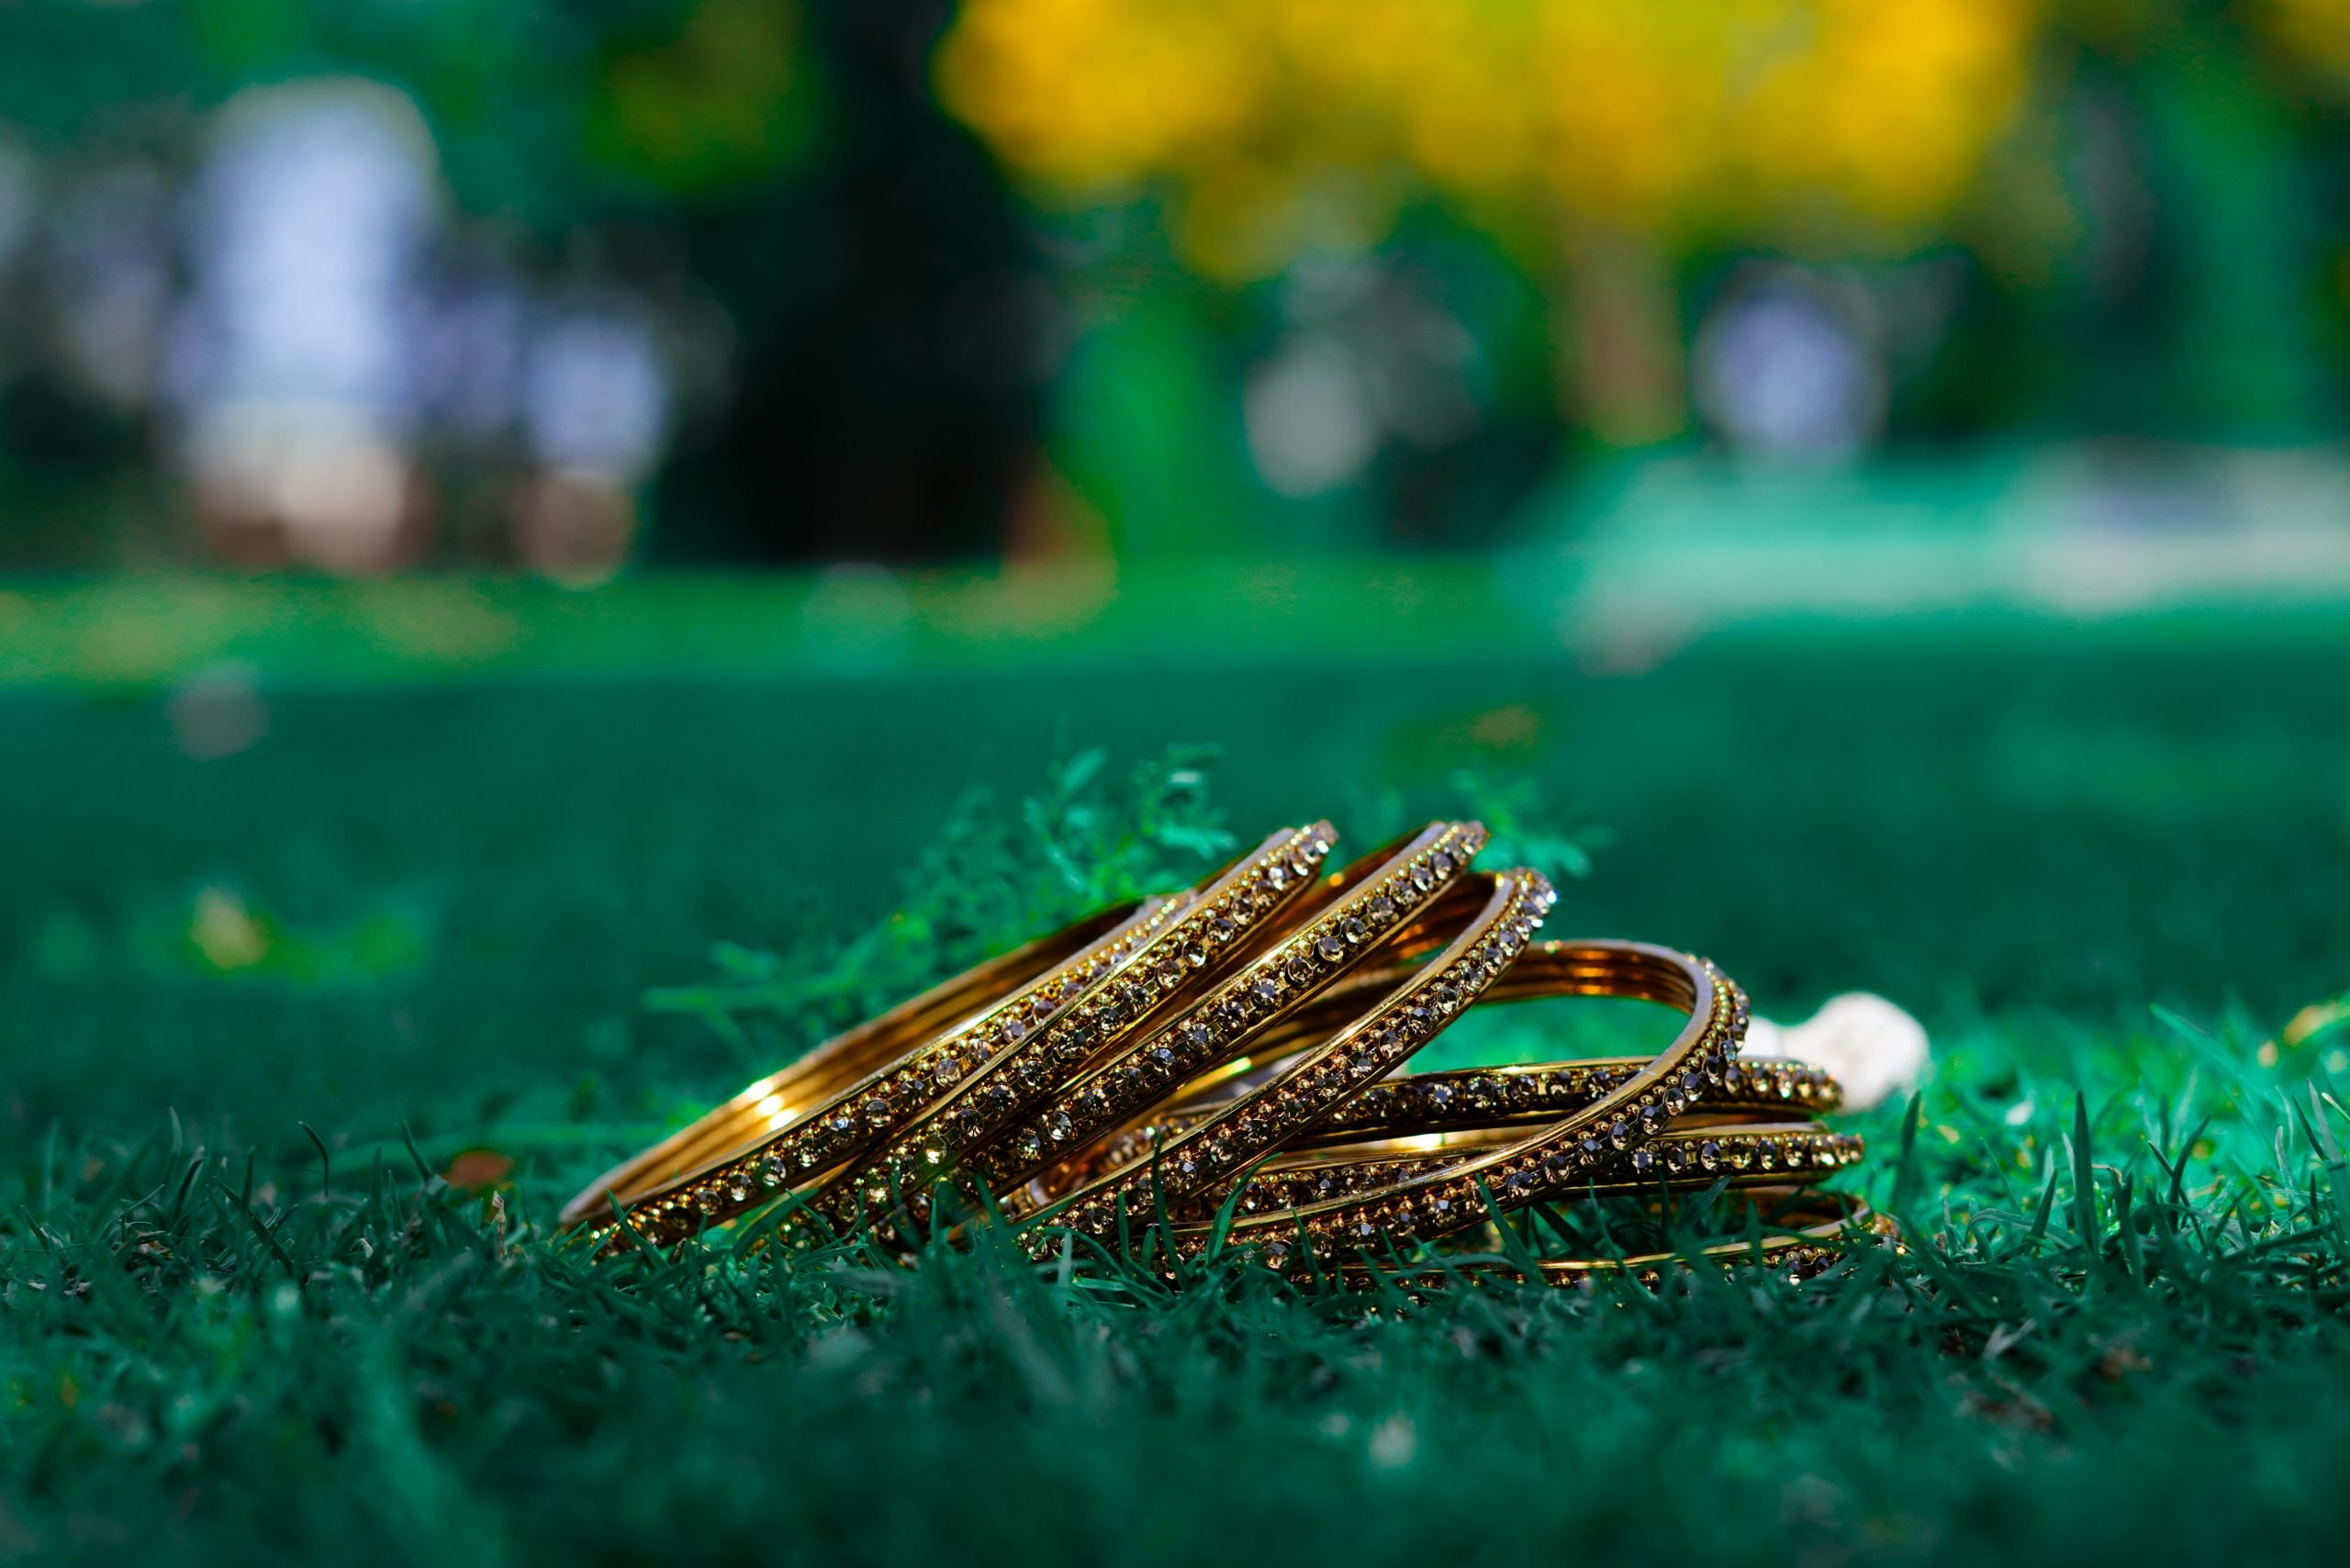 Bangles on the grass